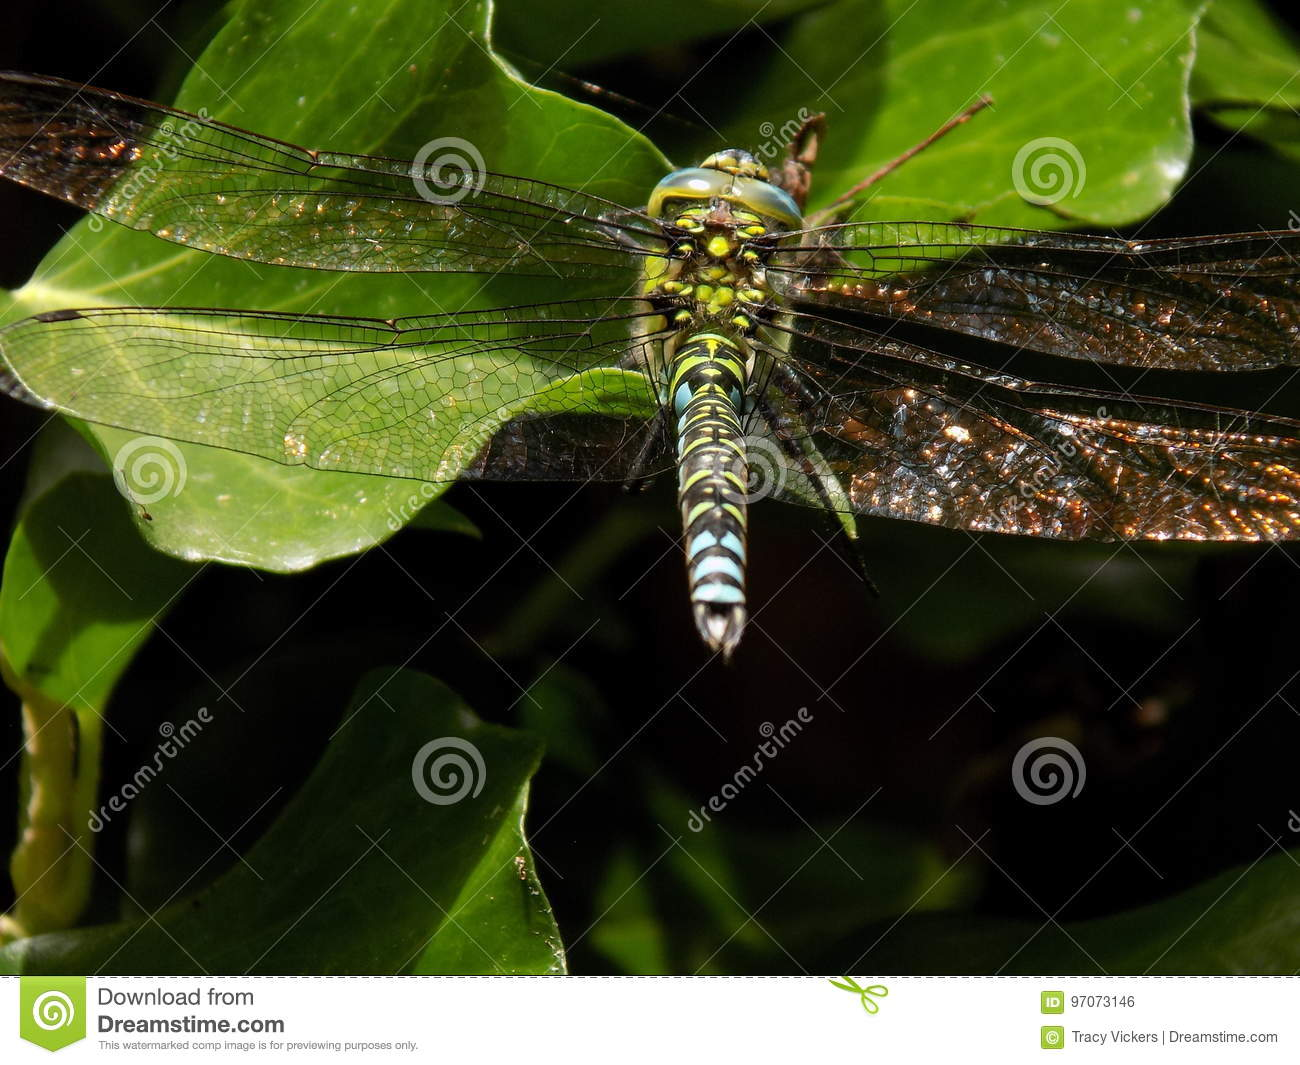 Male Southern hawker dragonfly with glistening outstretched wings